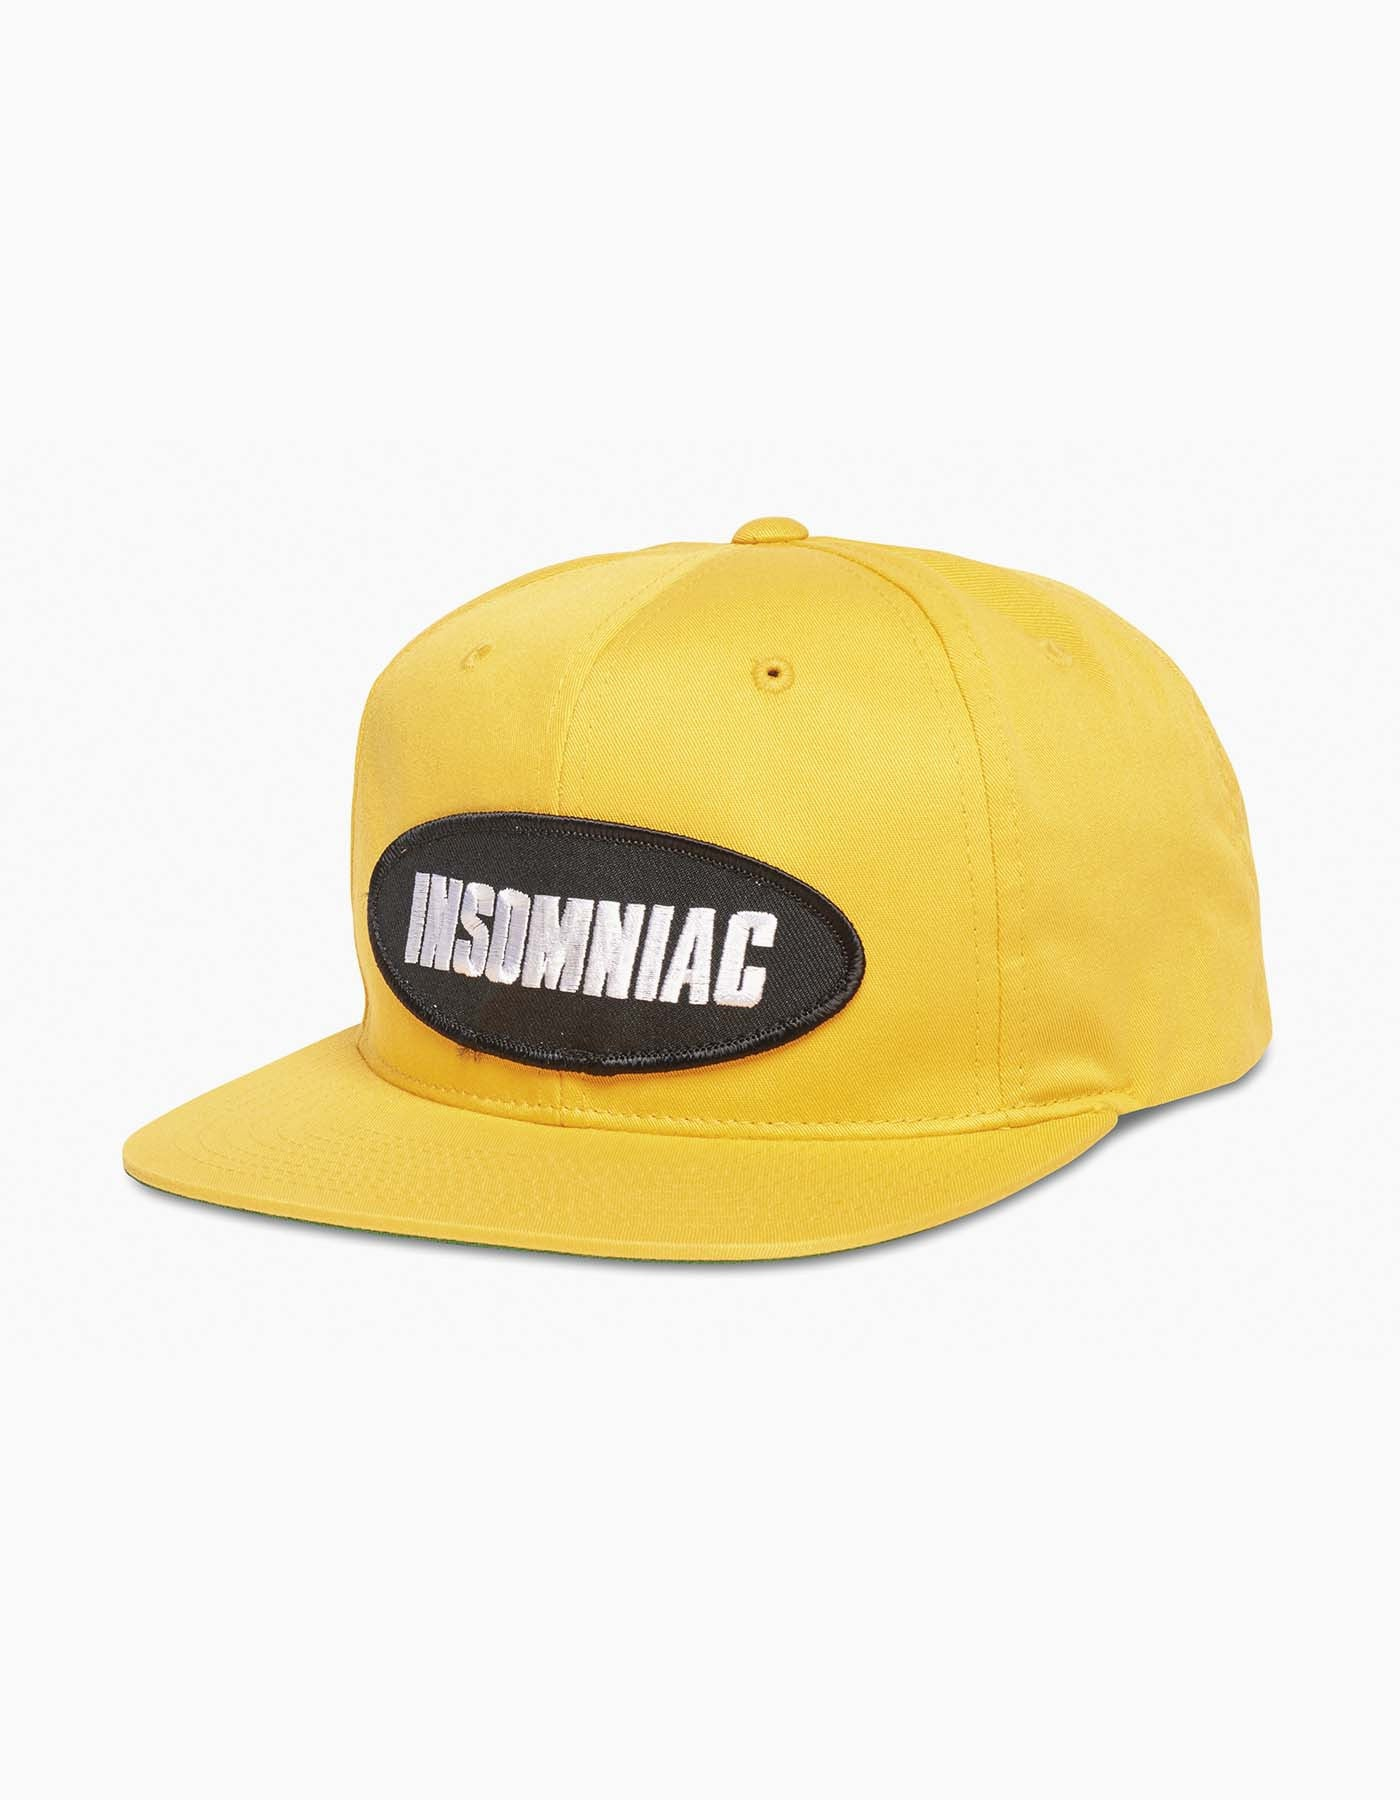 Insomniac-2017 Oval Patch Cap Yellow